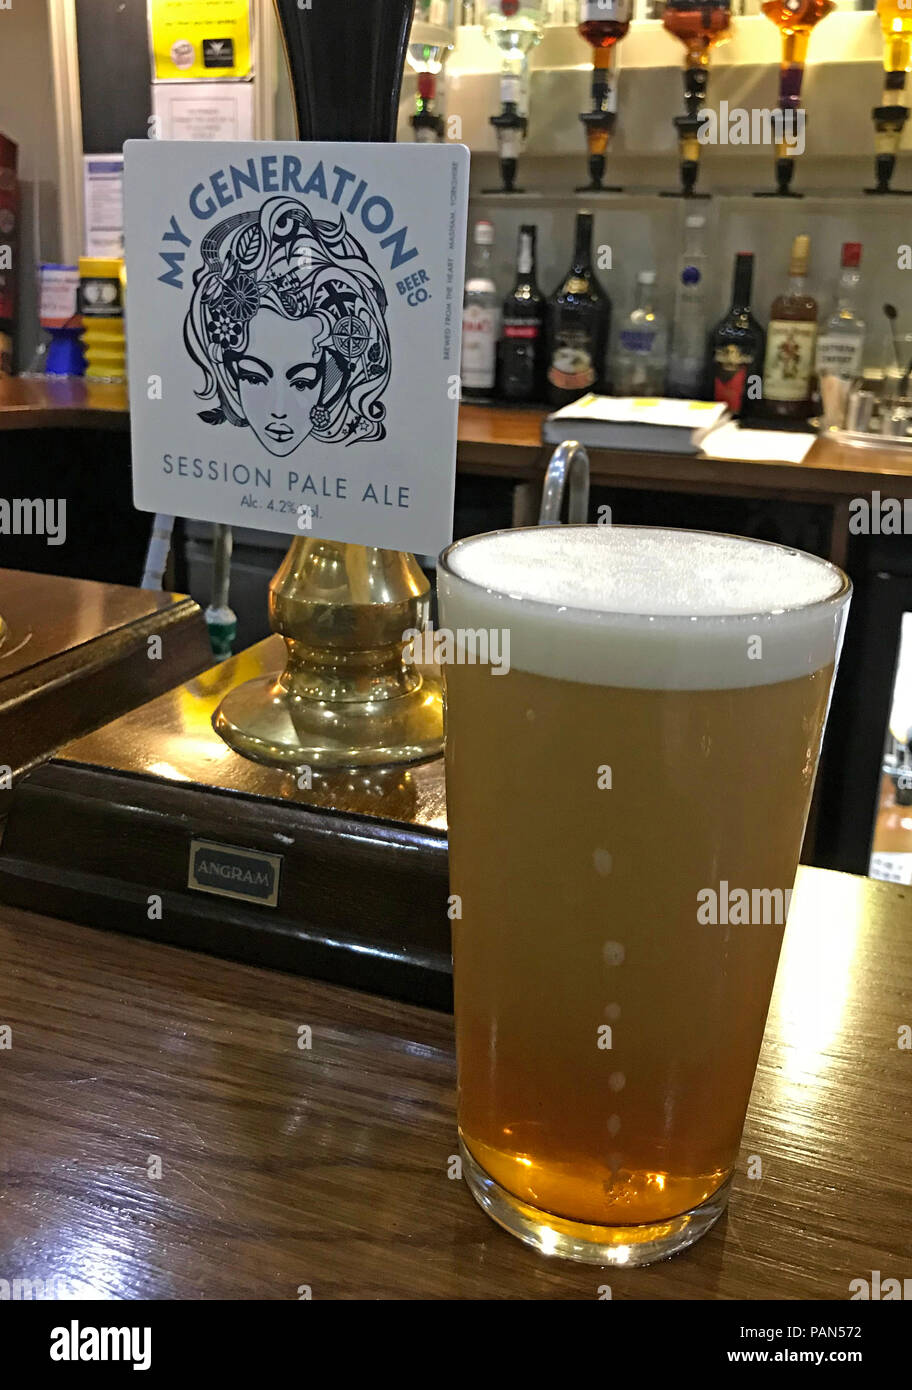 My Generation Session Pale Ale IPA, bar pump, Grappenhall, North West England, Stock Photo